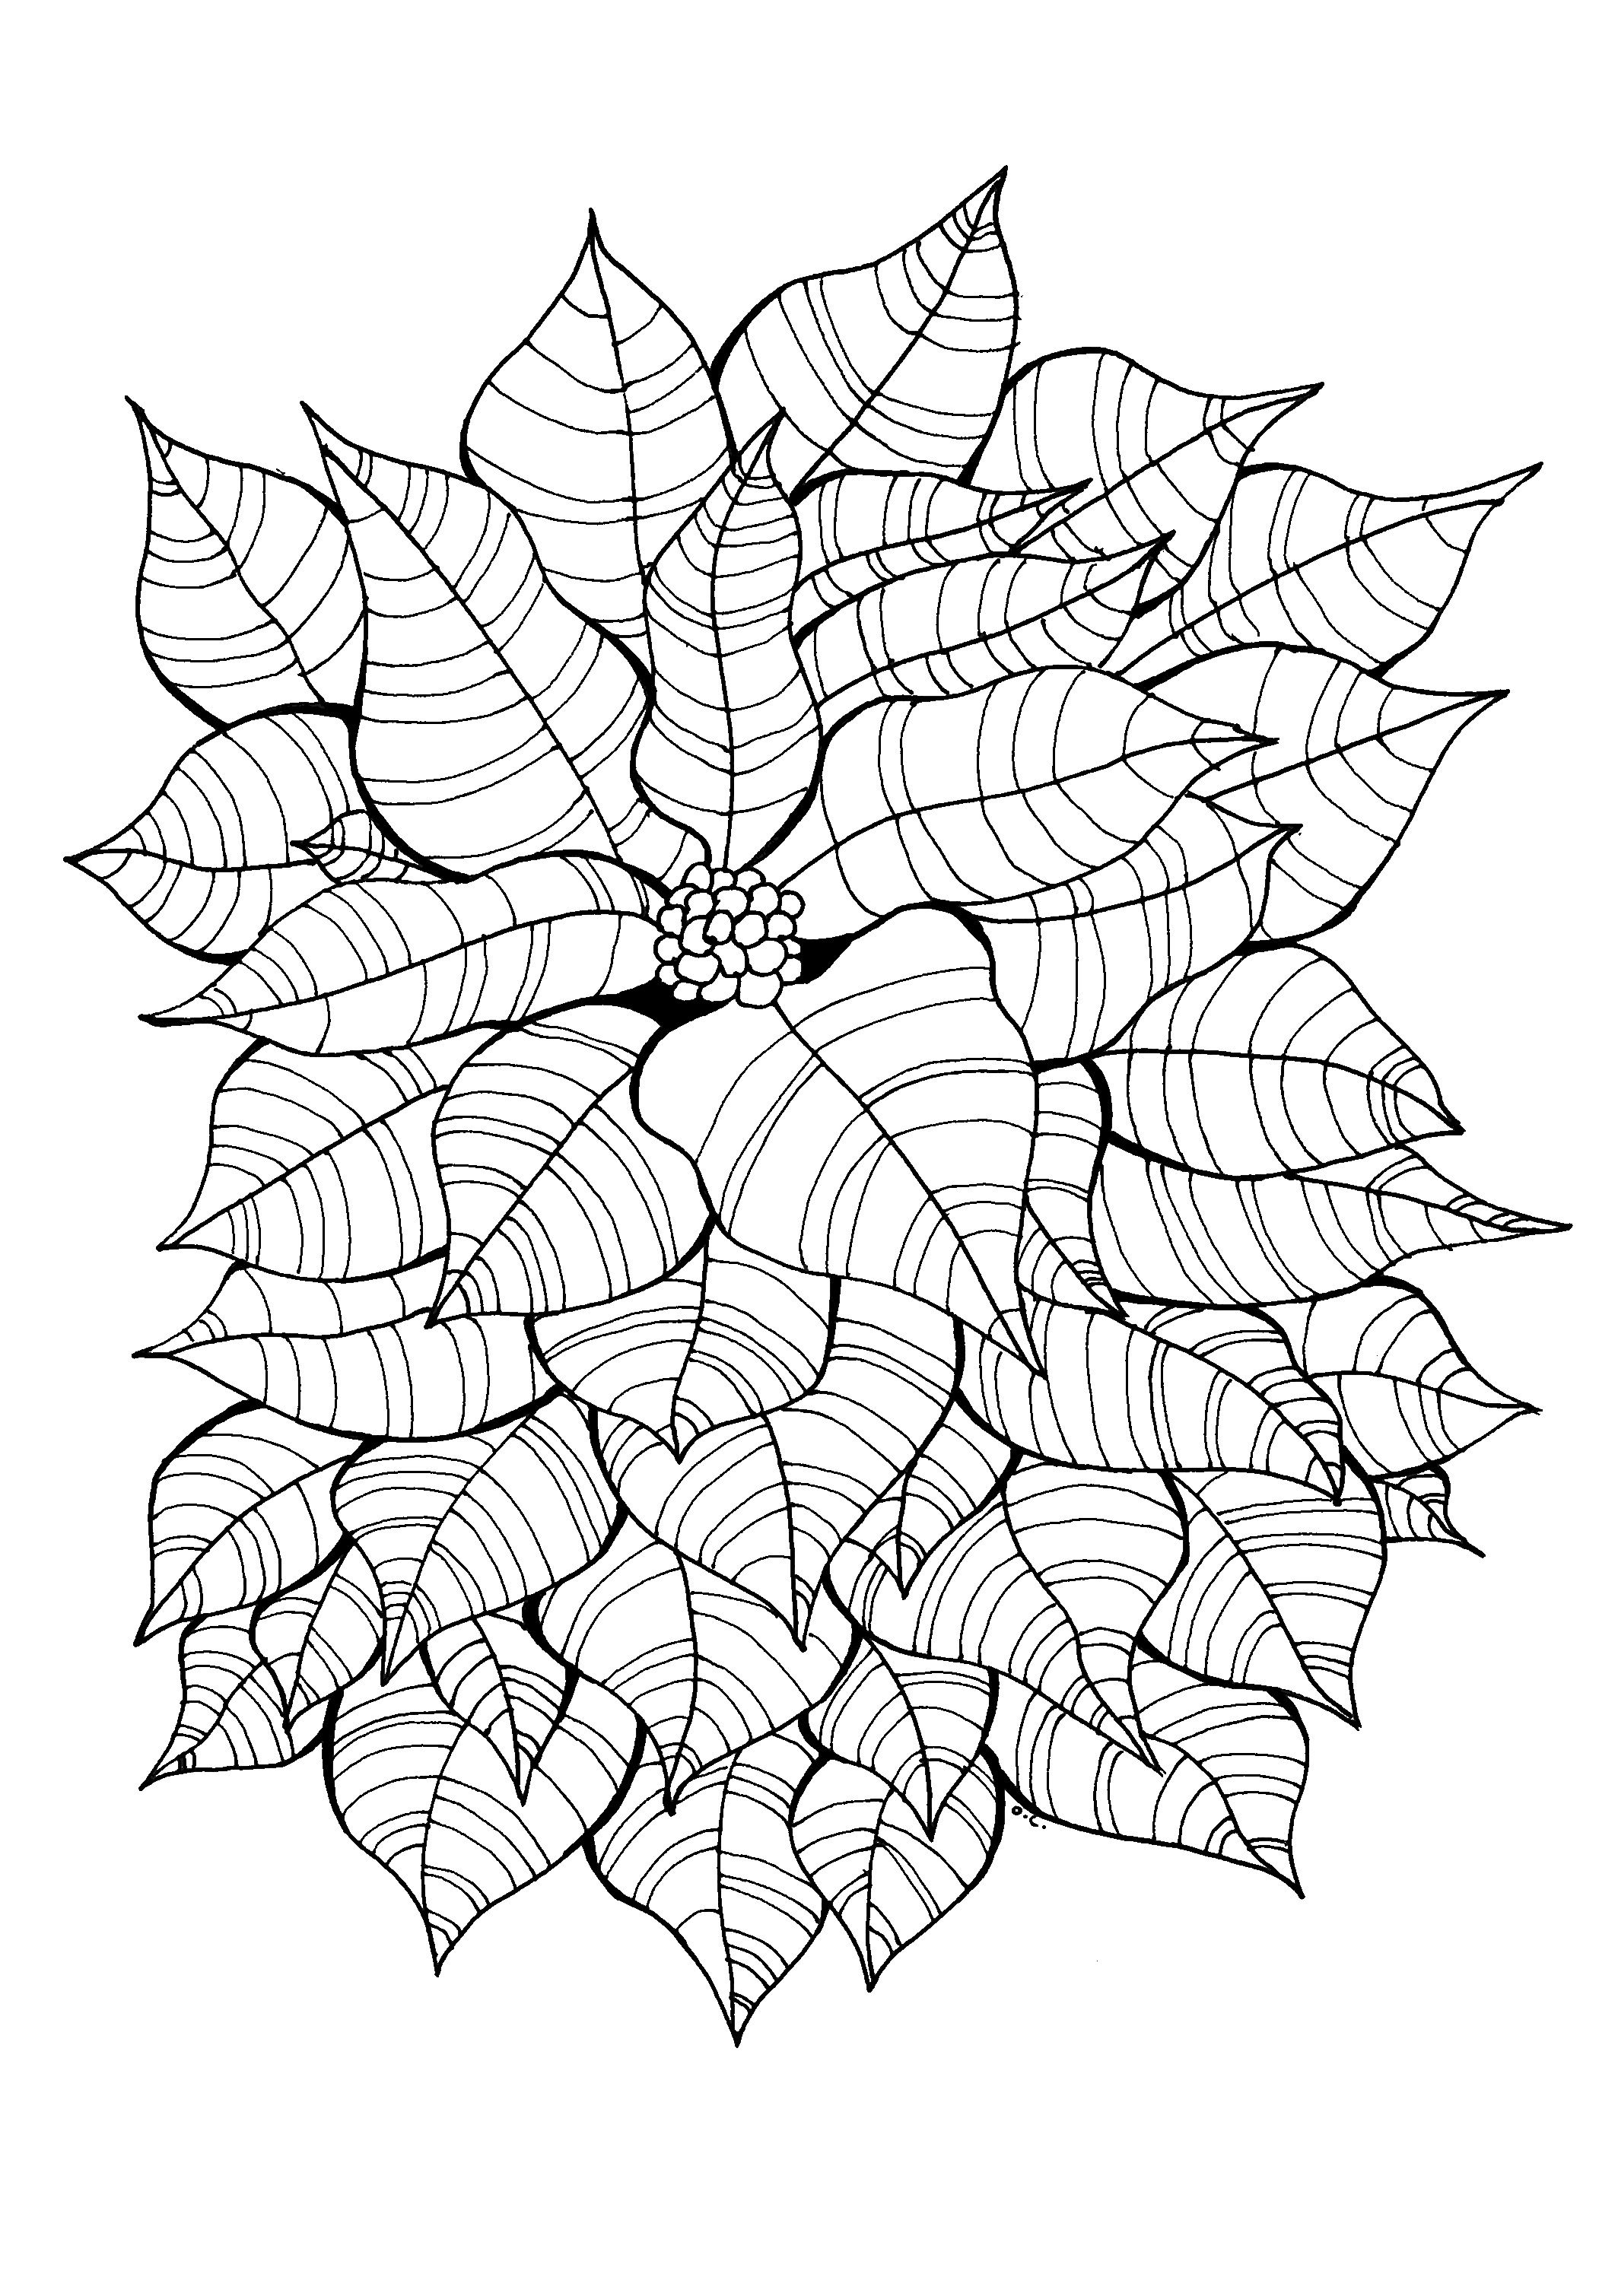 Coloring page adults drawing flowers vegetation tree art zen